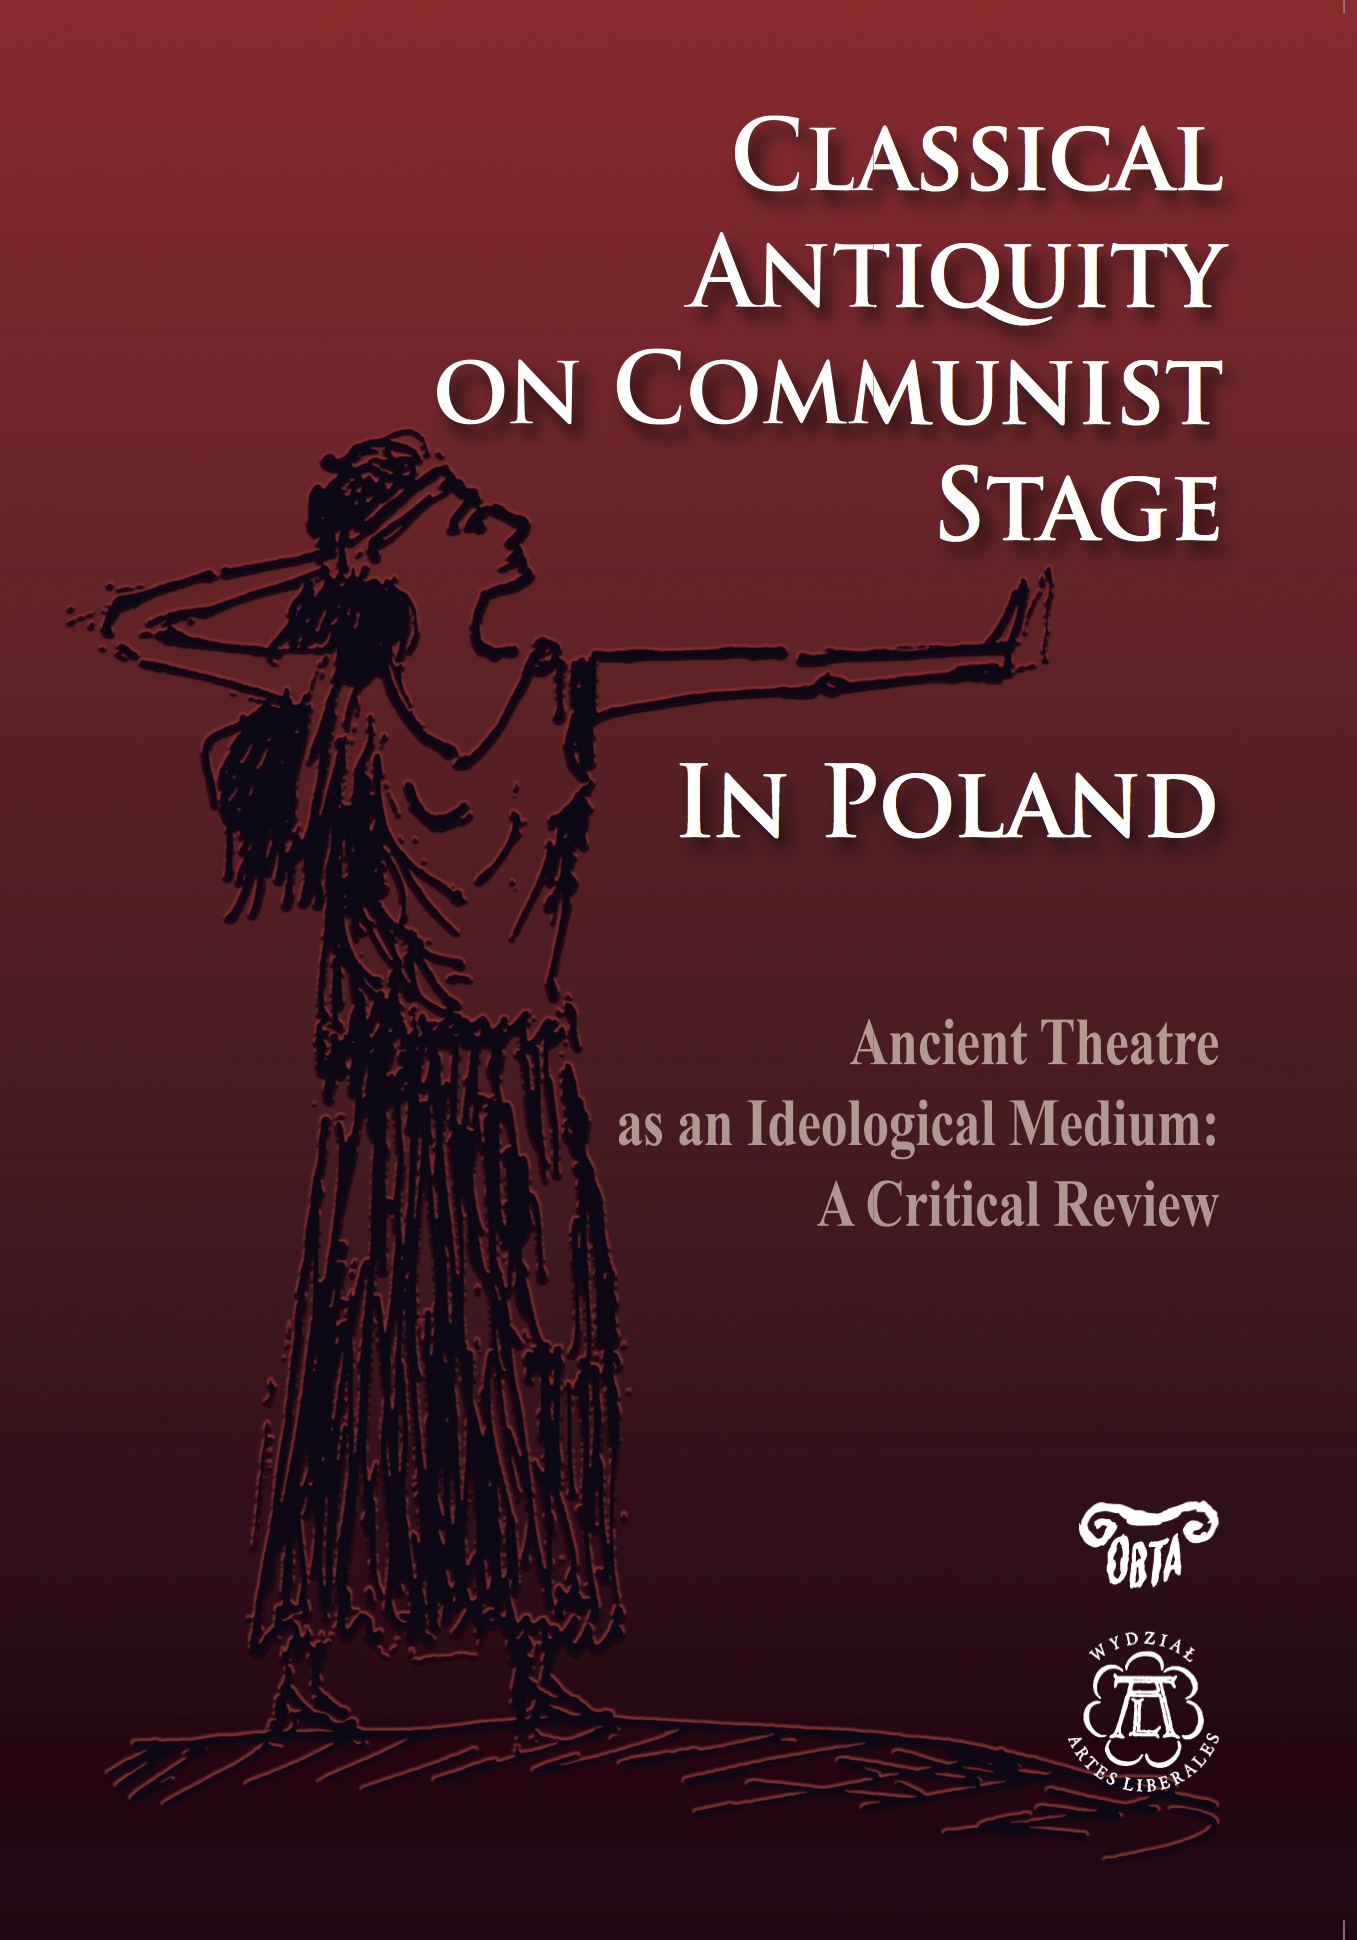 Classical Antiquity on Communist Stage in Poland. Ancient Theatre as an Ideological Medium. A Critical Review